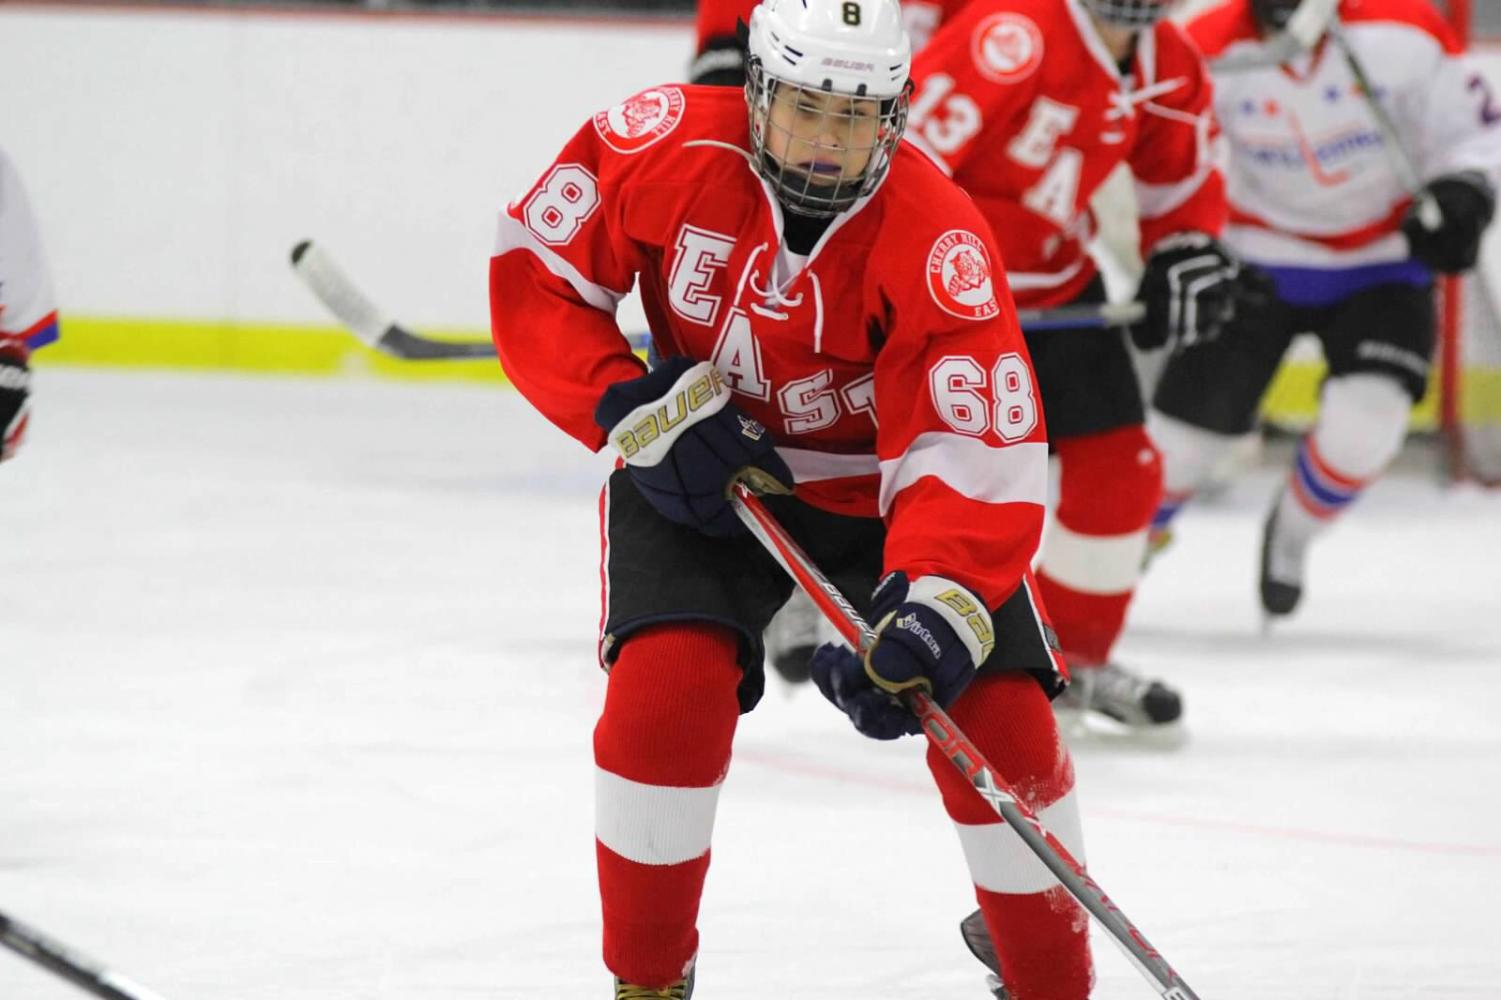 East Ice Hockey player Luke Steele ('20) at a recent game.